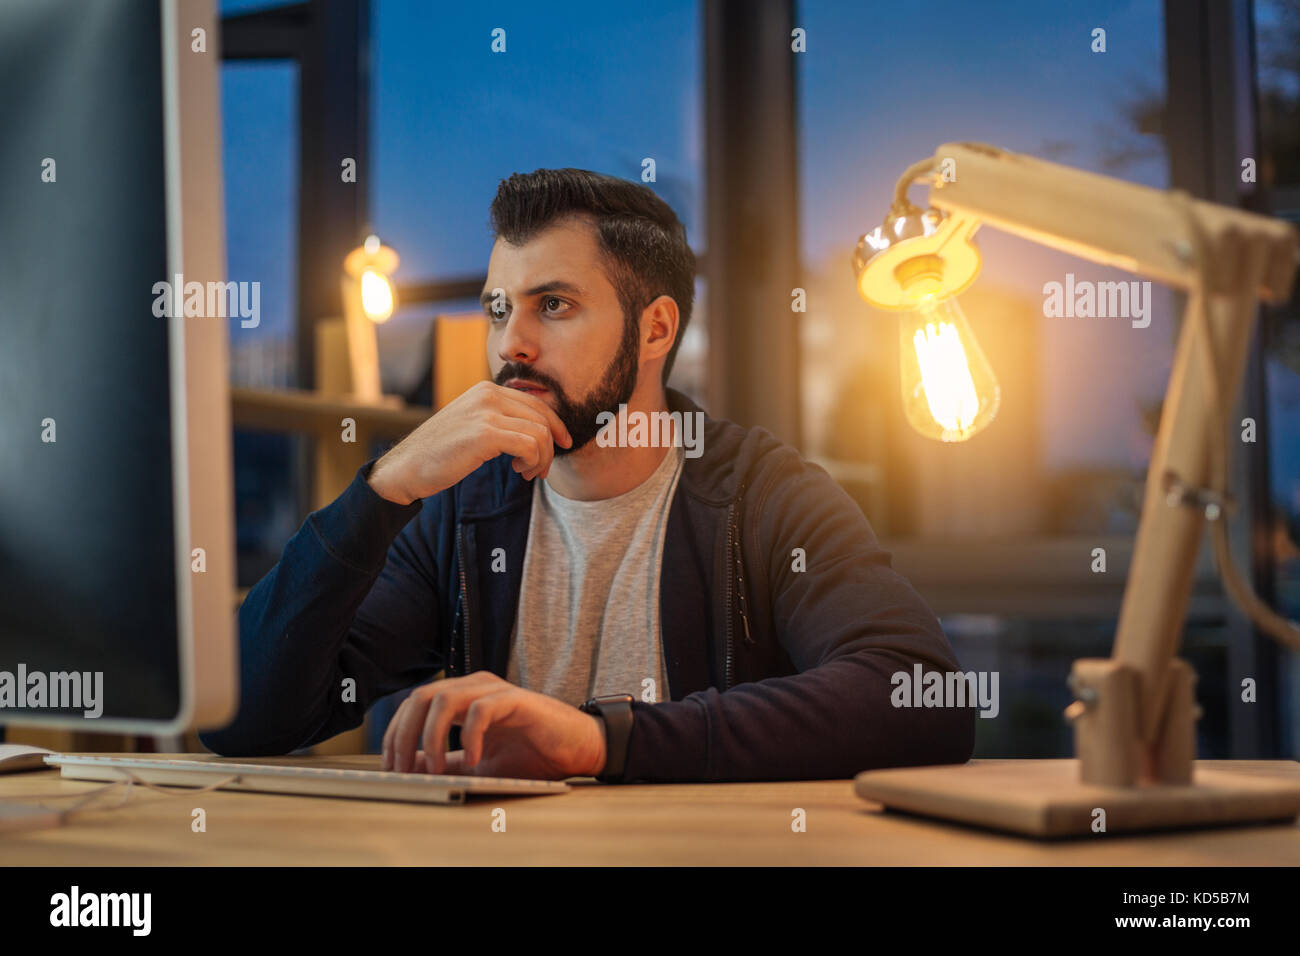 Attentive office worker doing his job - Stock Image